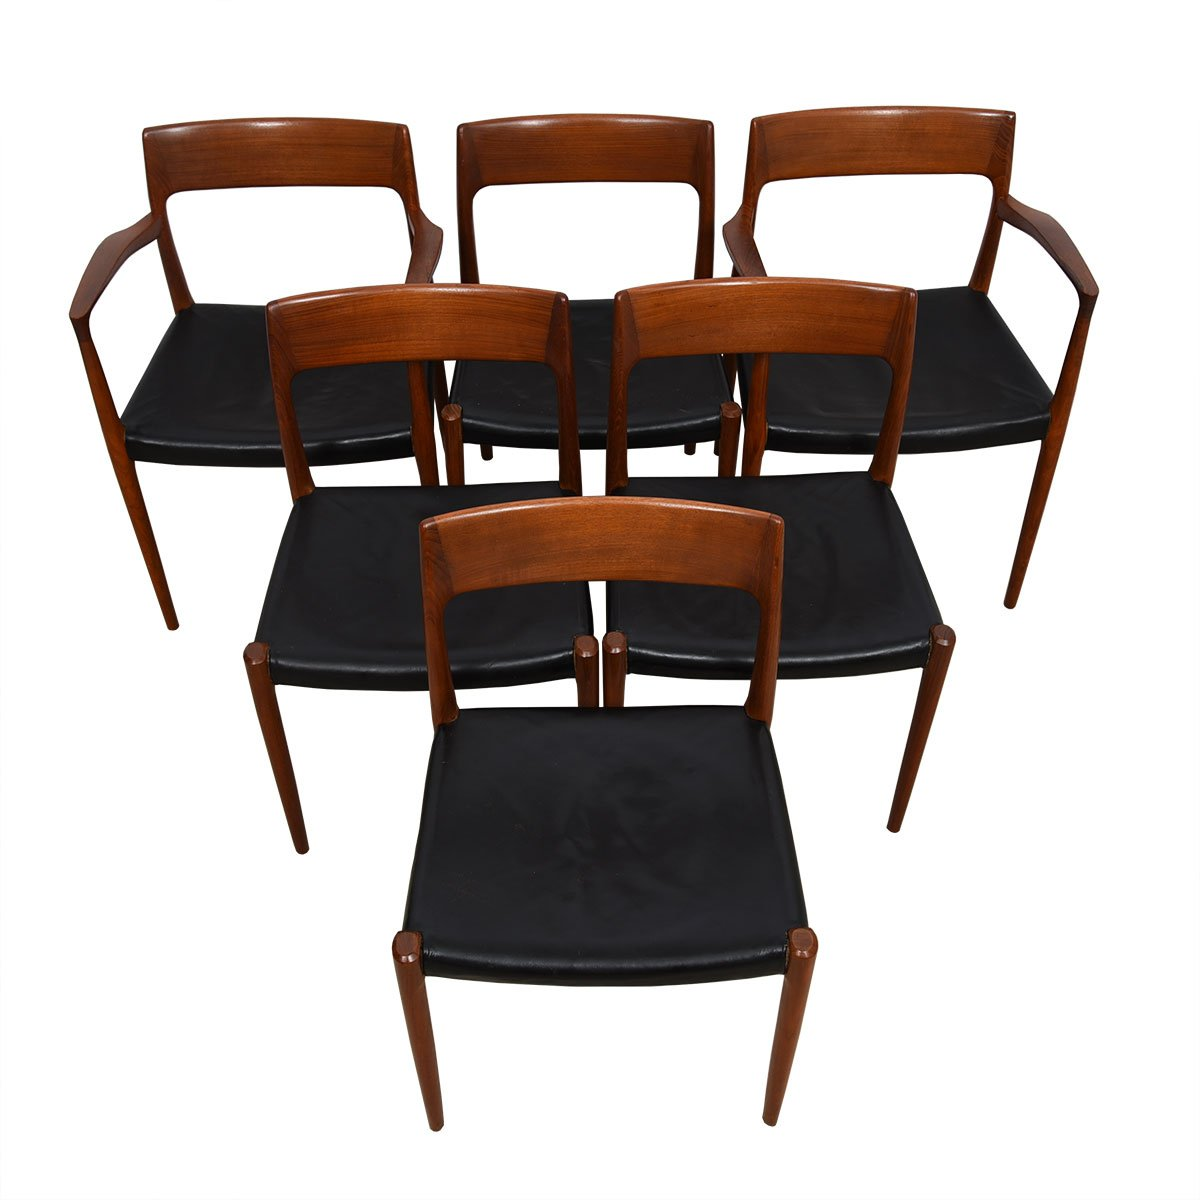 Fabulous Set of 6 Leather (2 Arm + 4 Side) Danish #57 & #77 Teak Moller Chairs